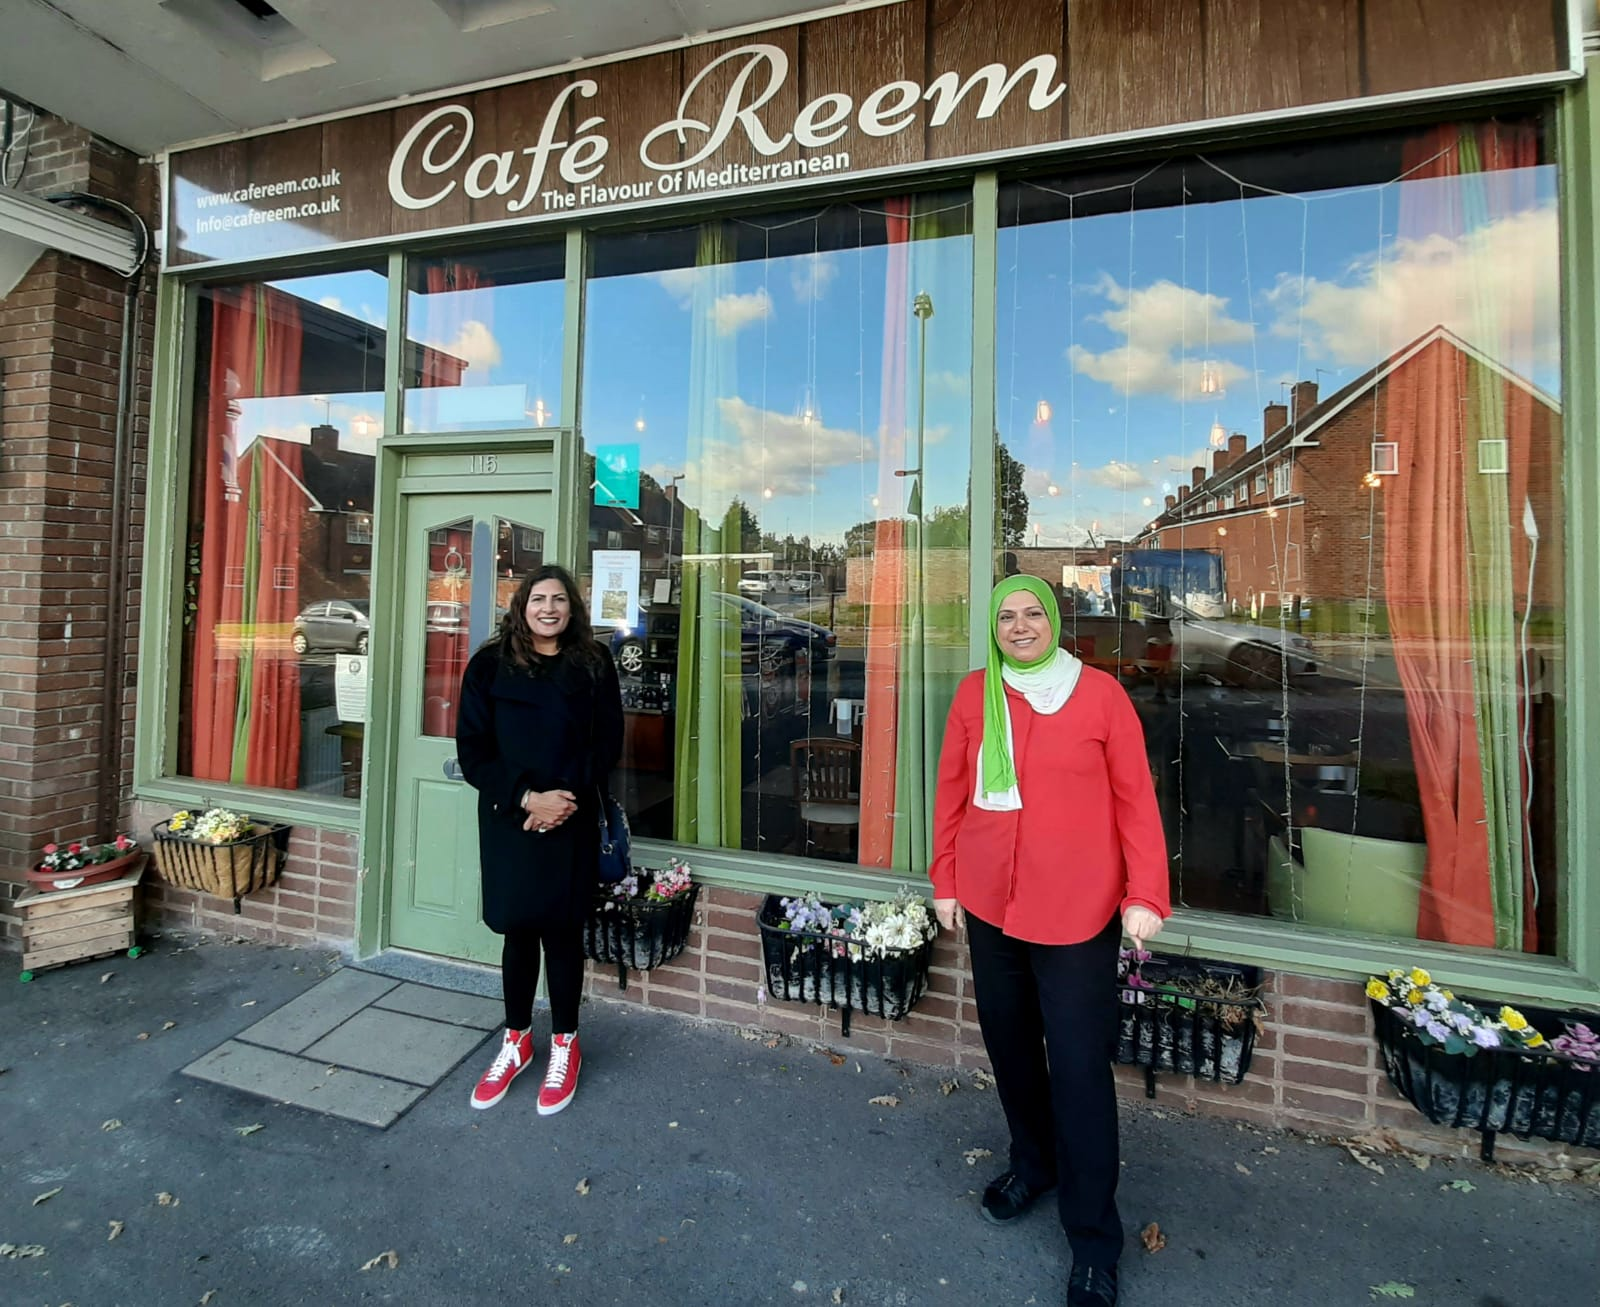 Preet meeting a business owner outside their cafe called Reem.